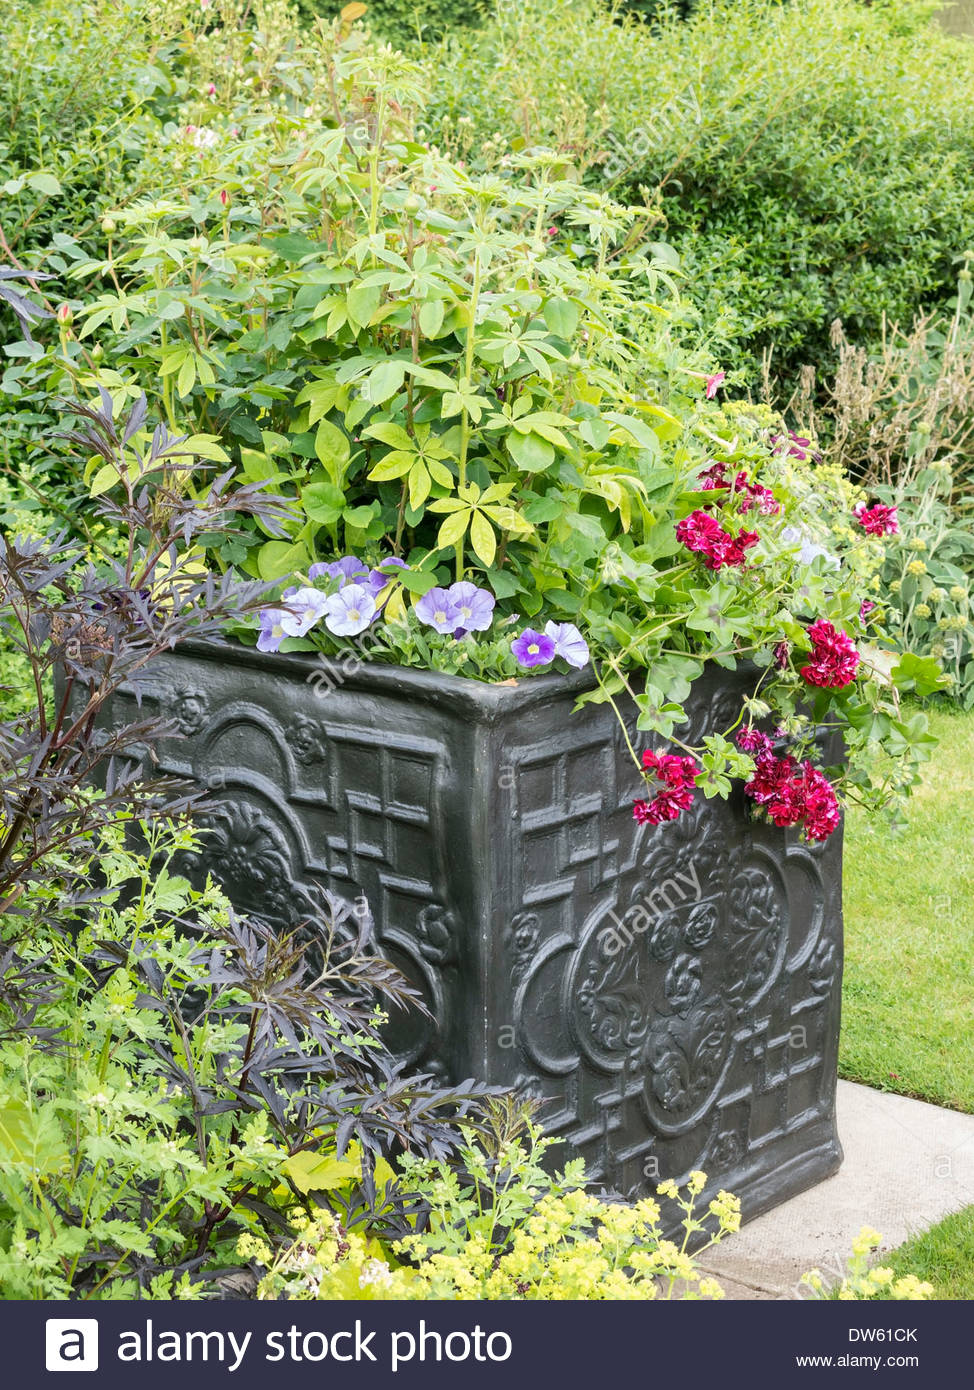 Imitation square decorated lead patio planter with plants and flowers in Easton Walled Gardens, Lincolnshire, England, UK - Stock Image